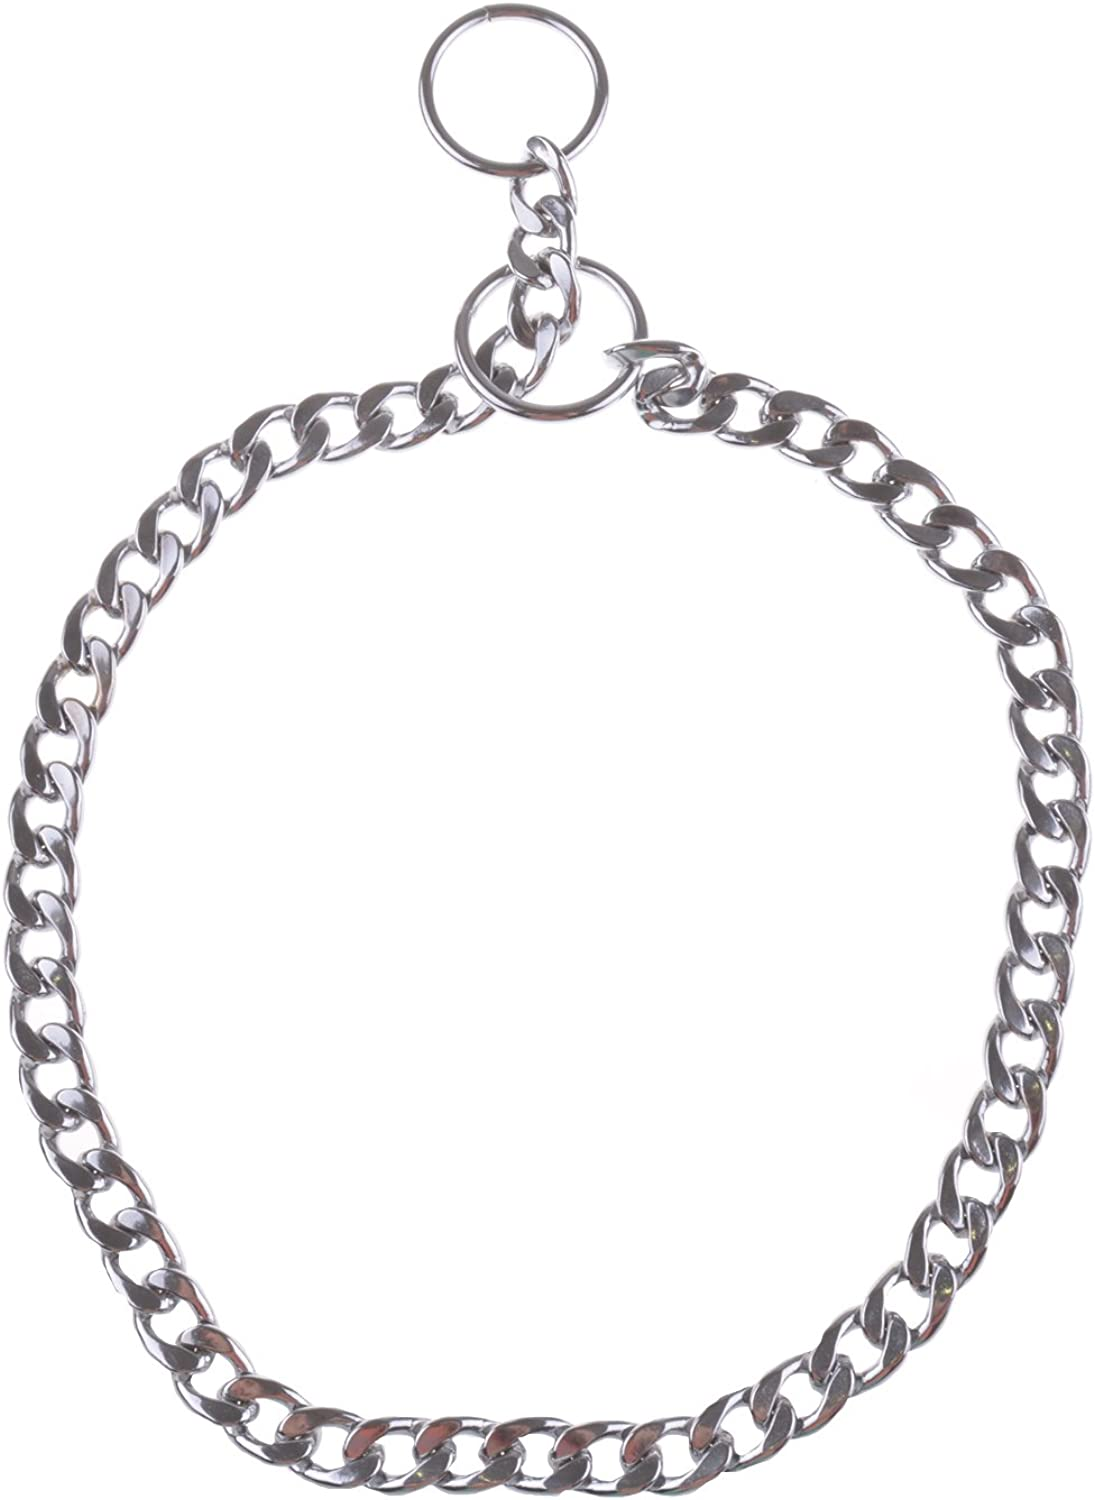 Heavy Duty Snake Chain Chrome Plated Metal Iron Dog Chain Collar for Training Walking Obedience Behavior for Small and Medium Dogs (60cm3.5mm)